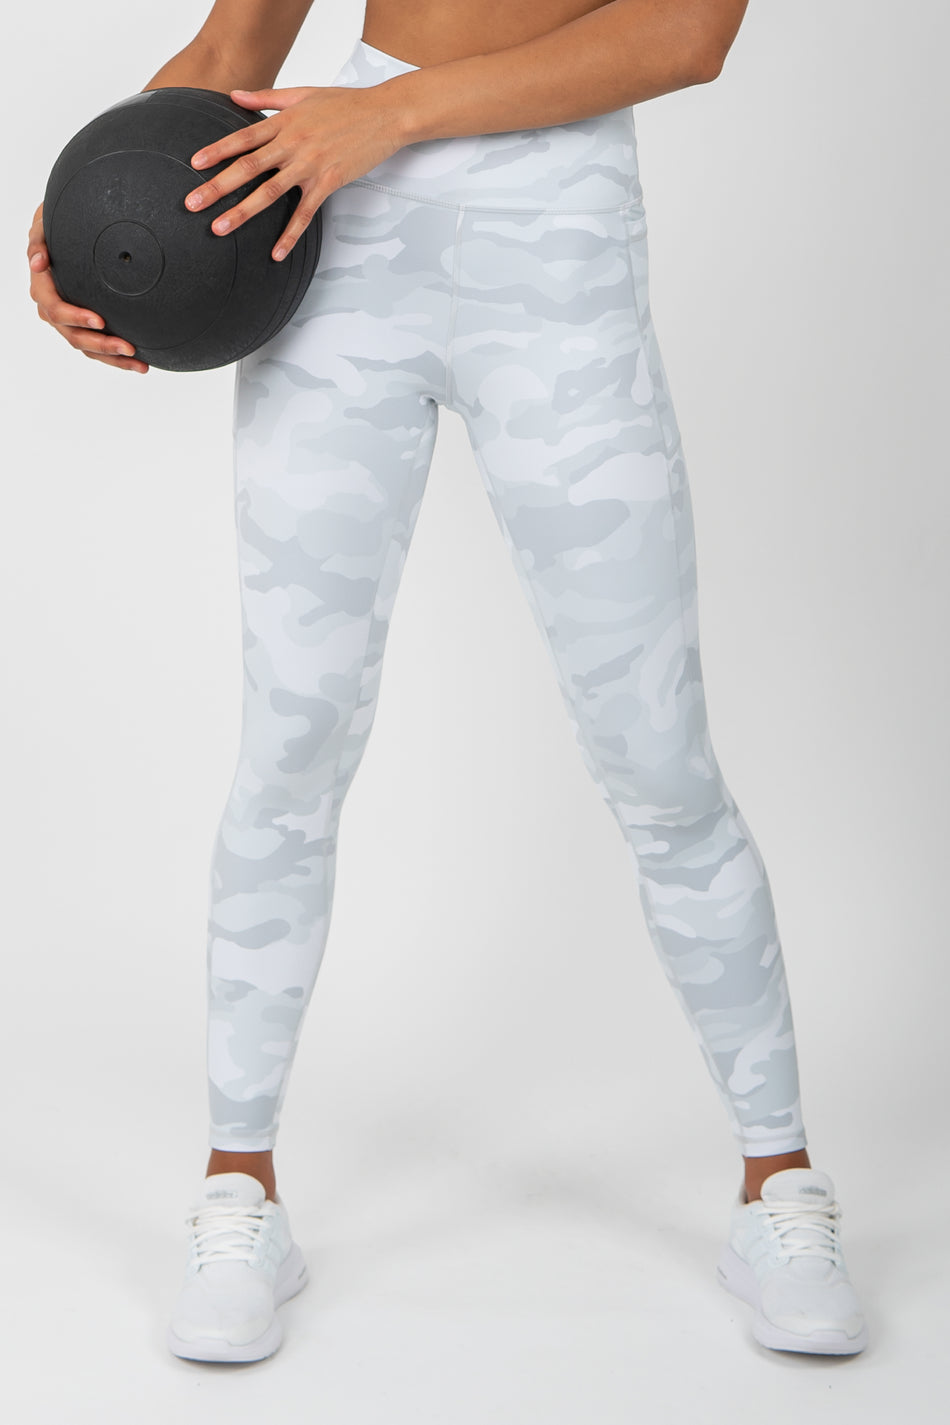 Camo Leggings - White - WearWolf Clothing UK